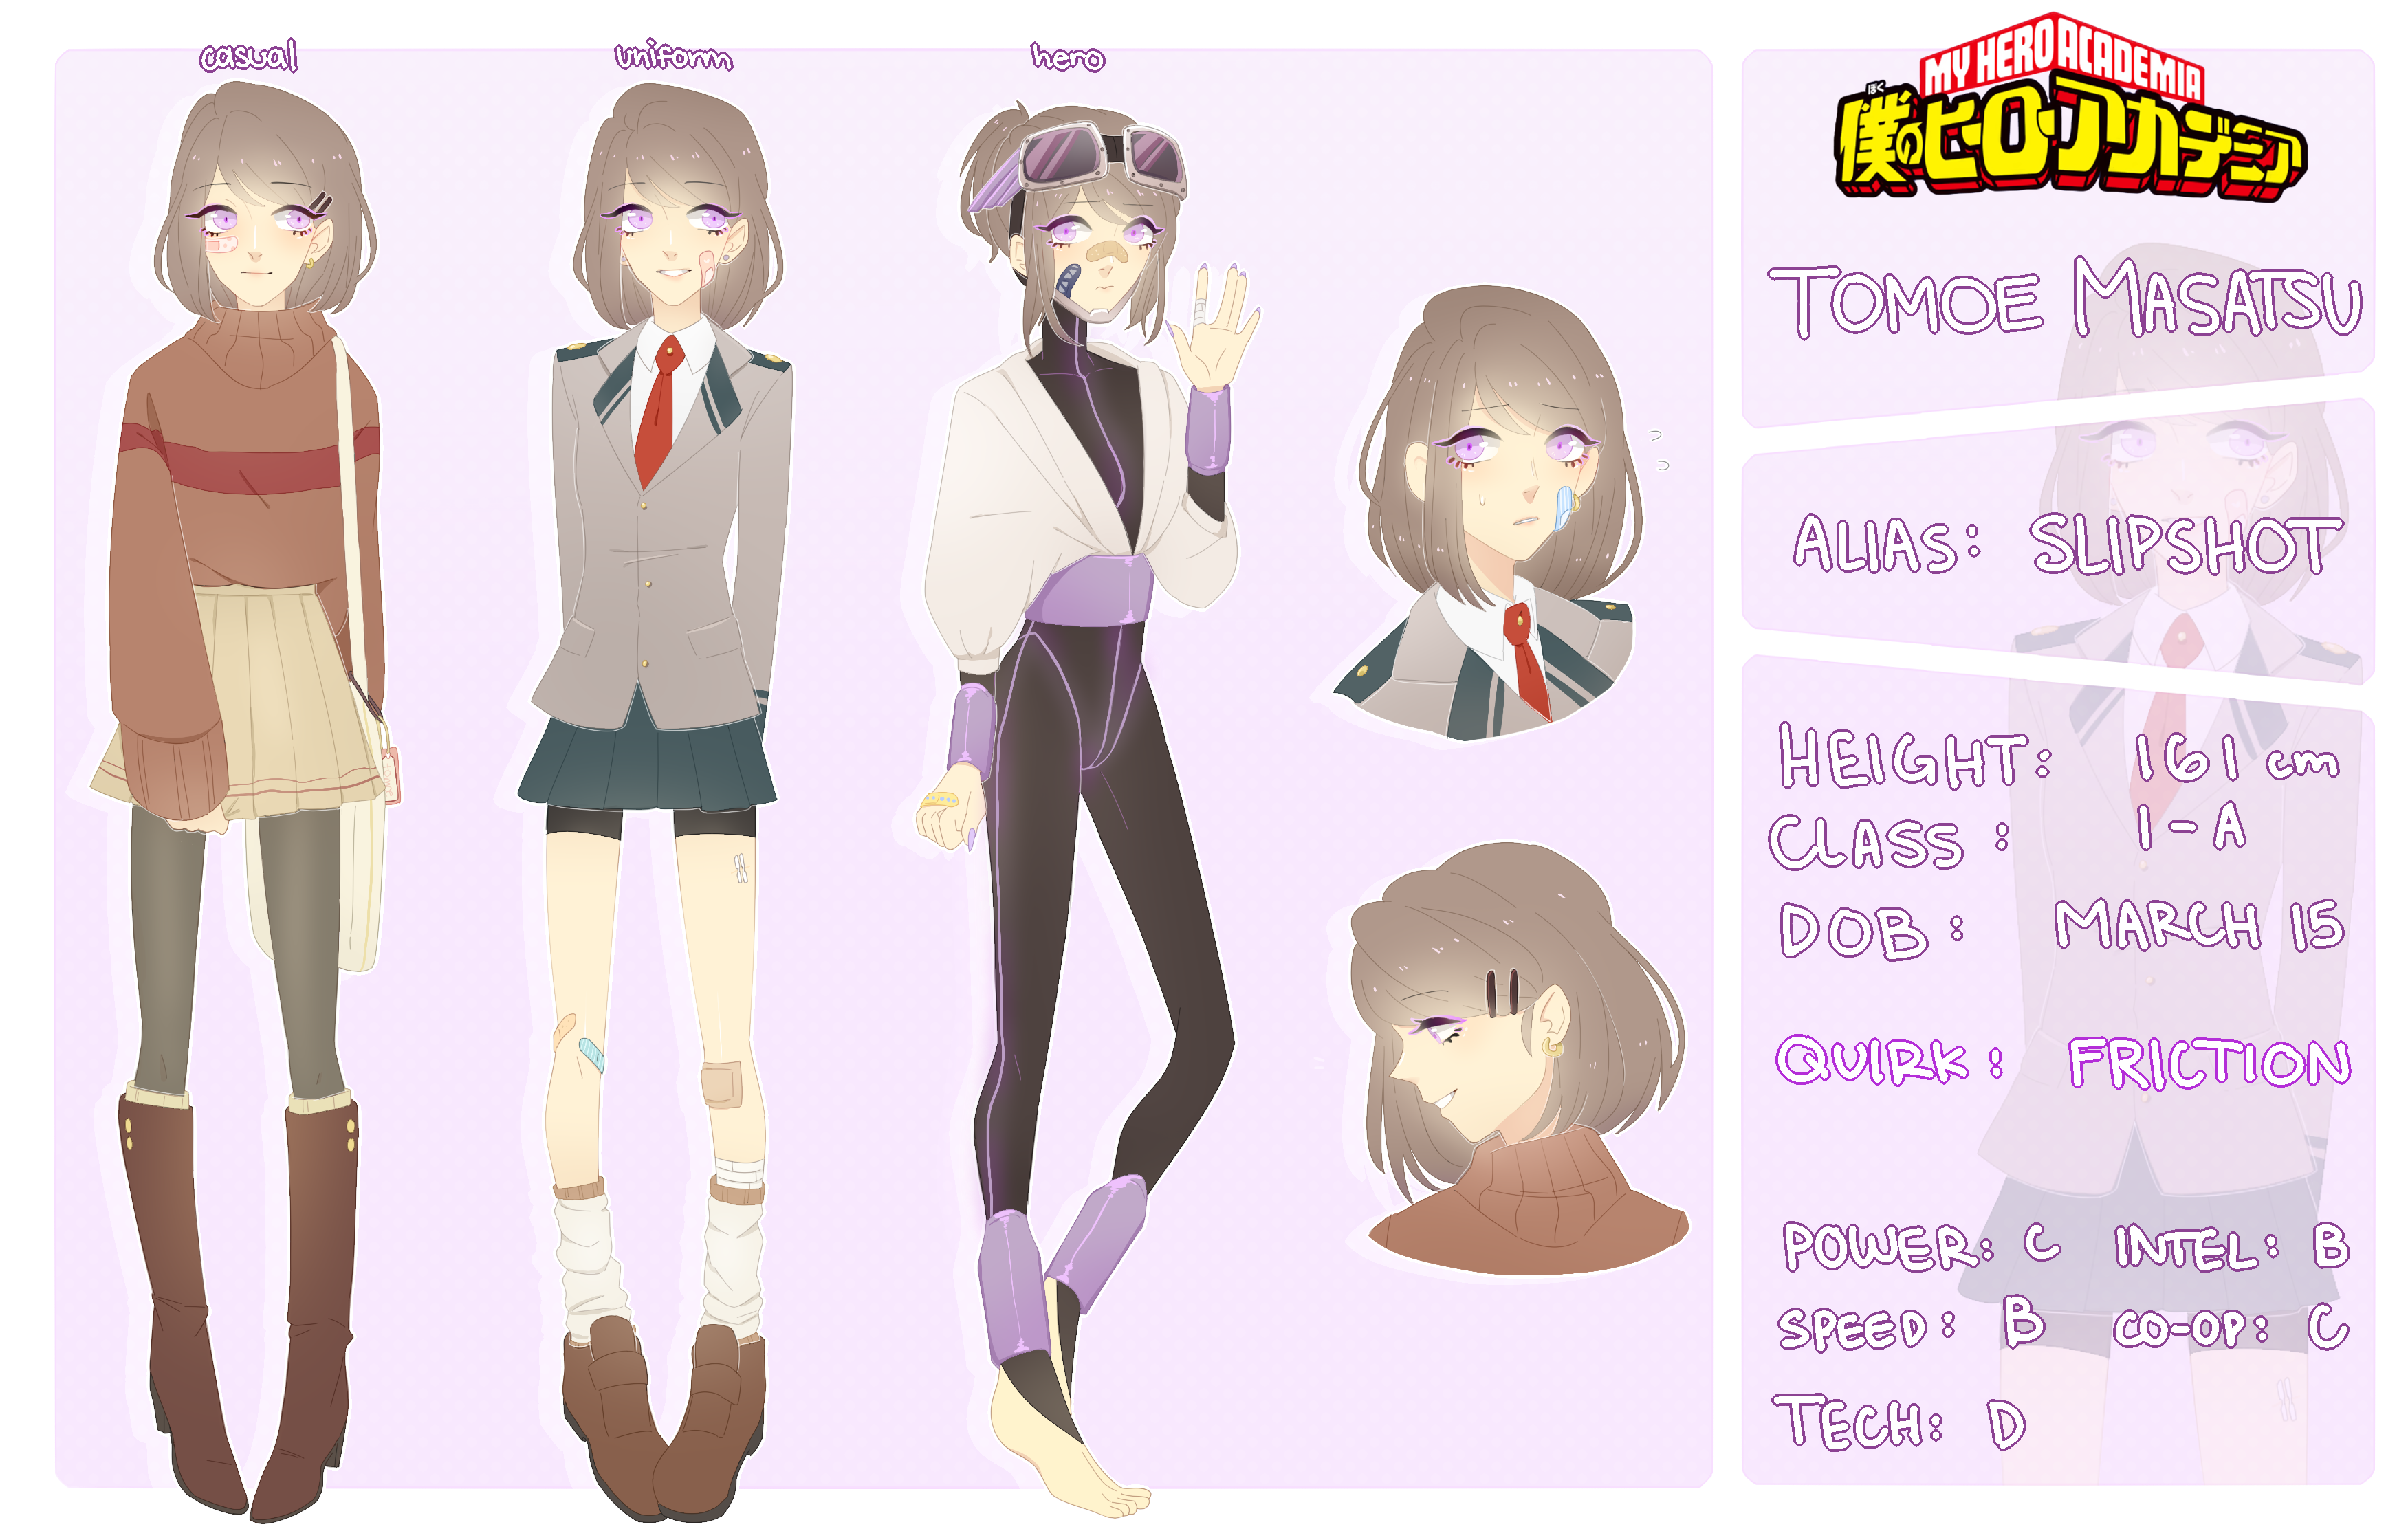 Bnha Oc Tomoe Bio By Seungcheol On Deviantart